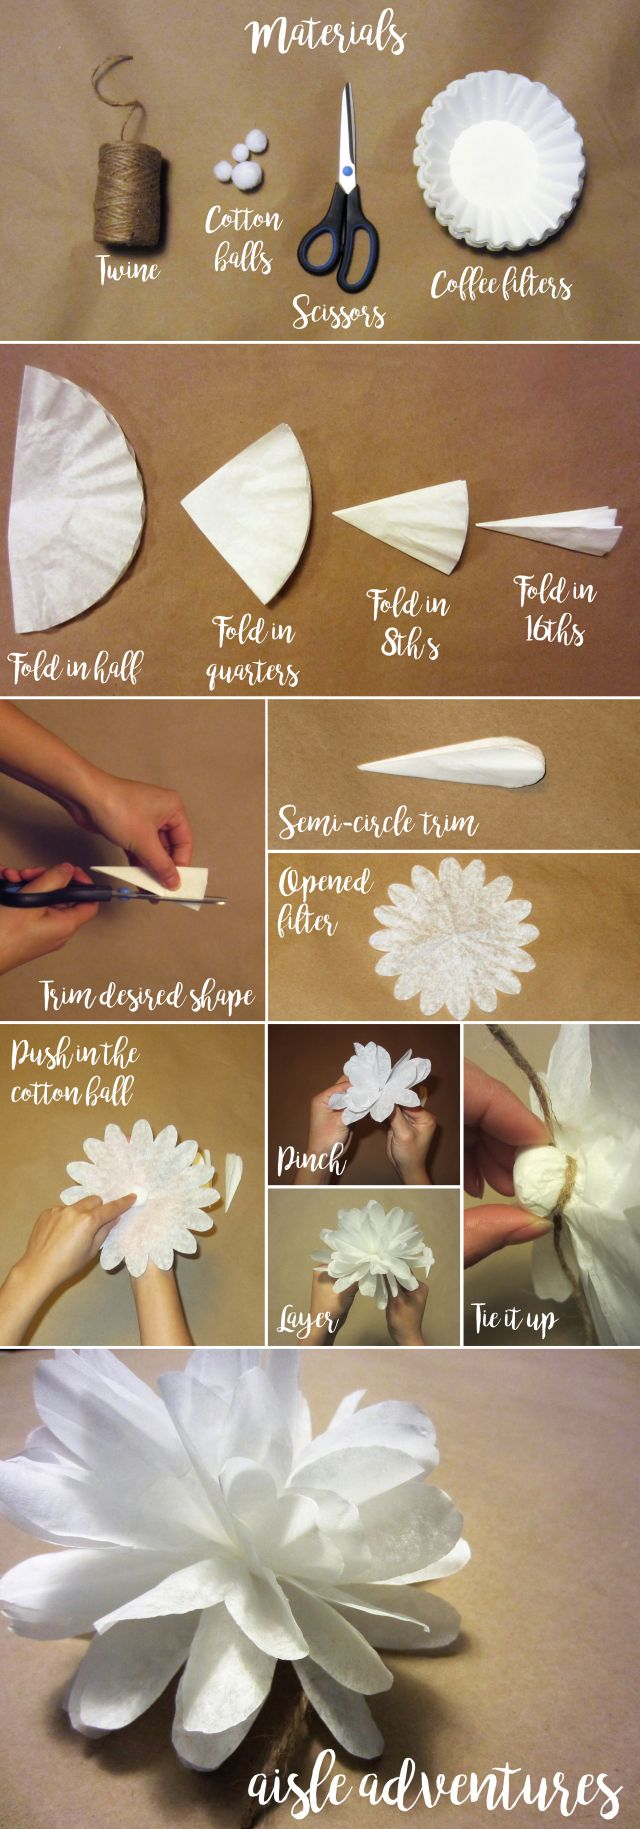 Diy Coffee Filter Flowers Crafts Pinterest Coffee Filter